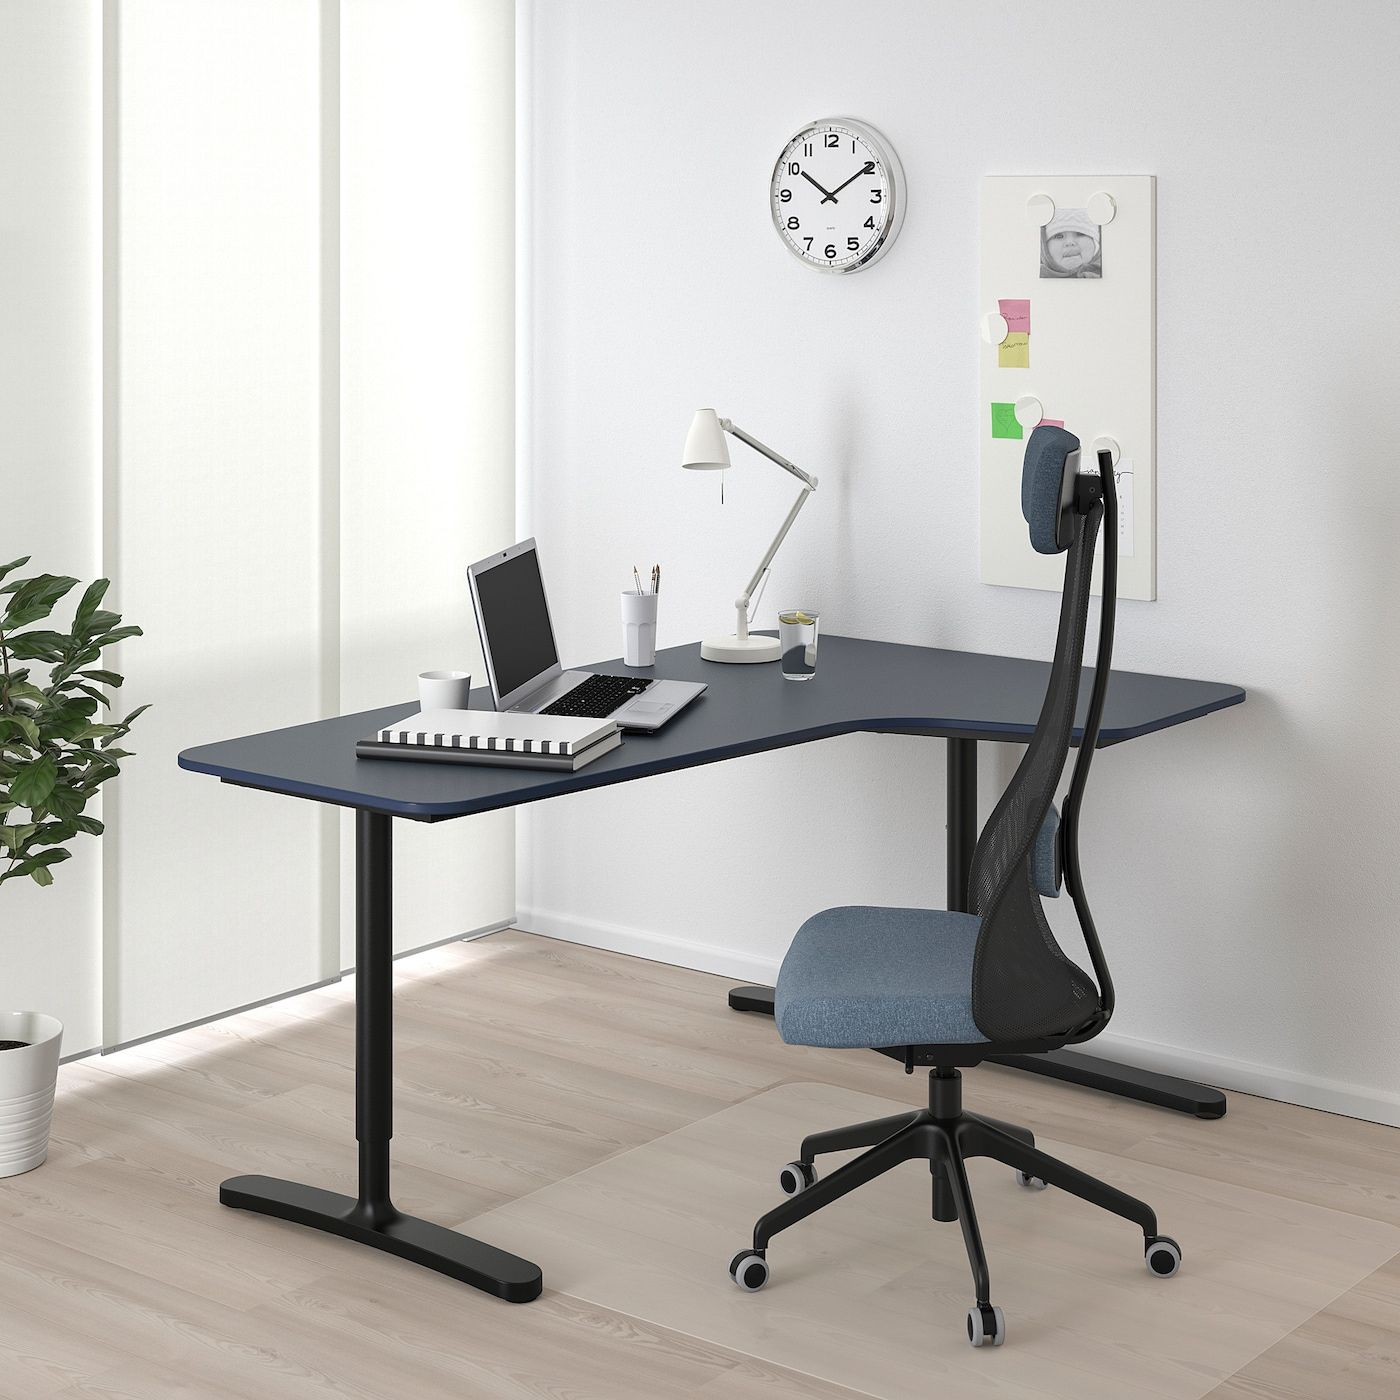 Ikea Bekant Linoleum Blue Black Corner Desk Right In 2020 Ikea Bekant White Desks Black Desk